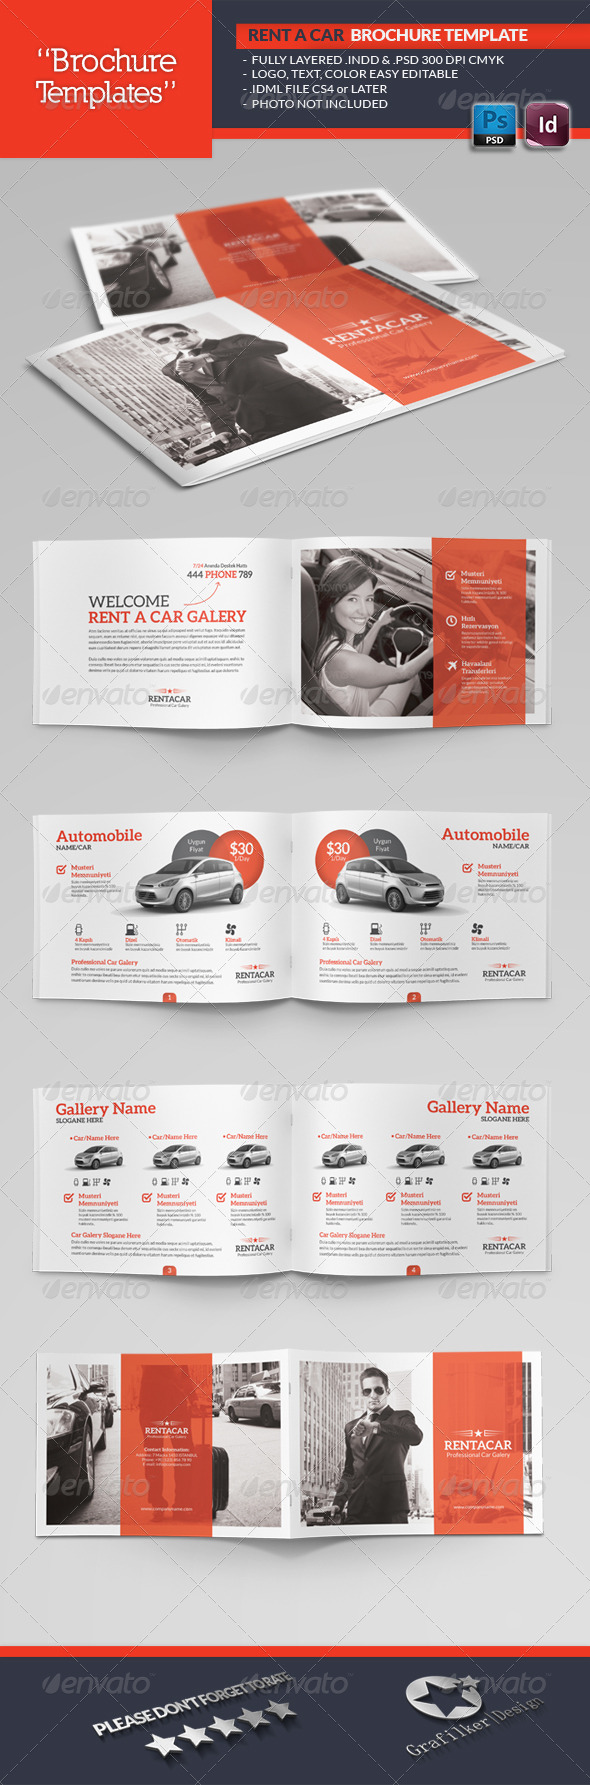 Rent A Car Brochure Template - Catalogs Brochures